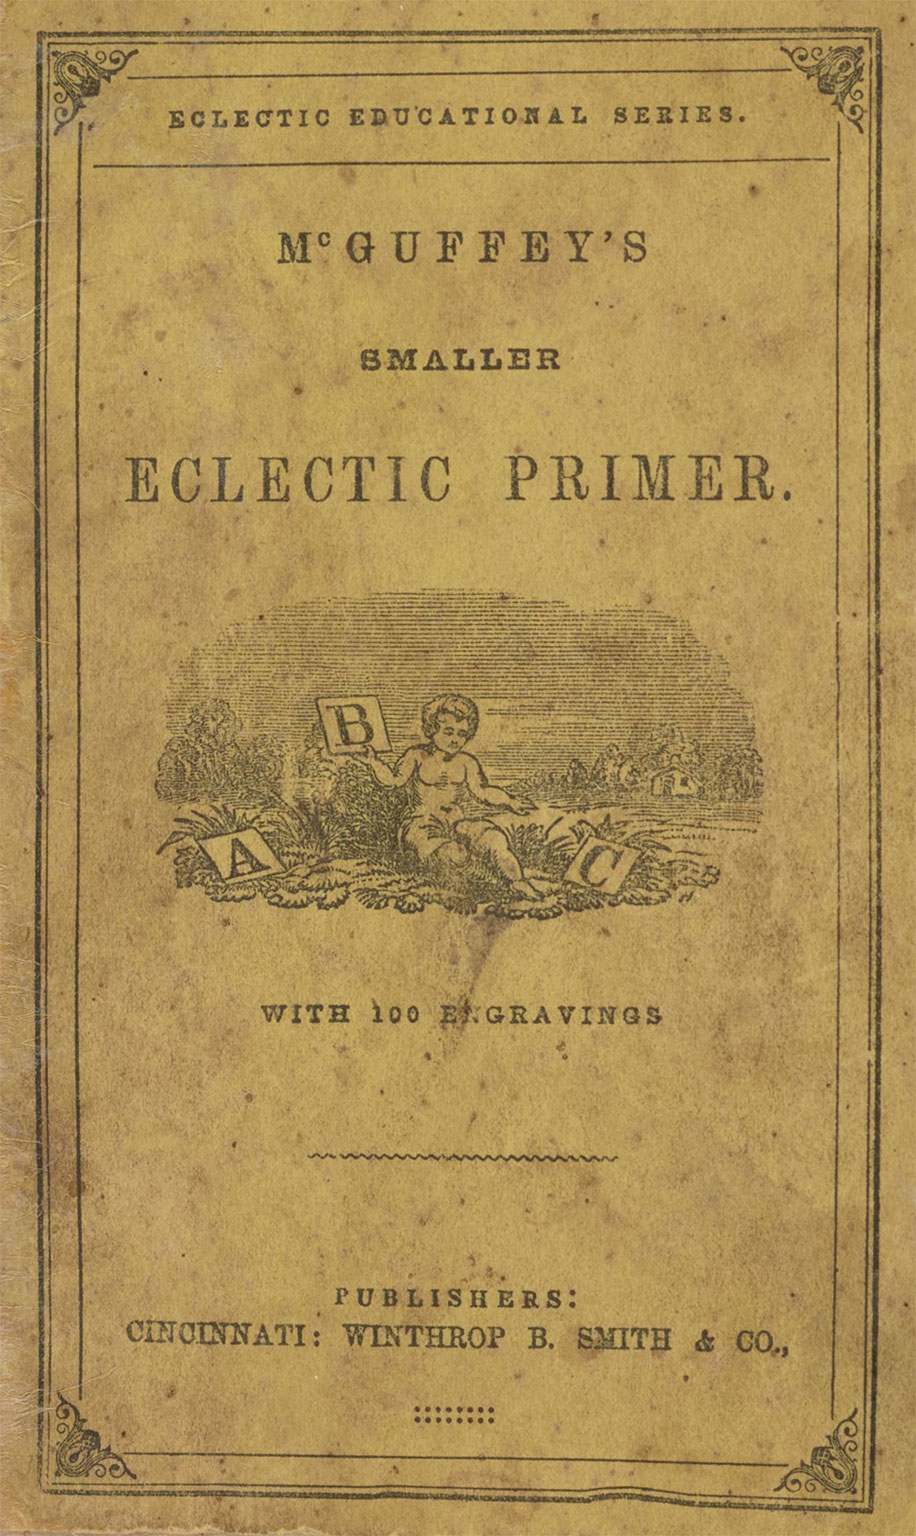 This is what the McGuffey's Primer looked like when Finn went to school.